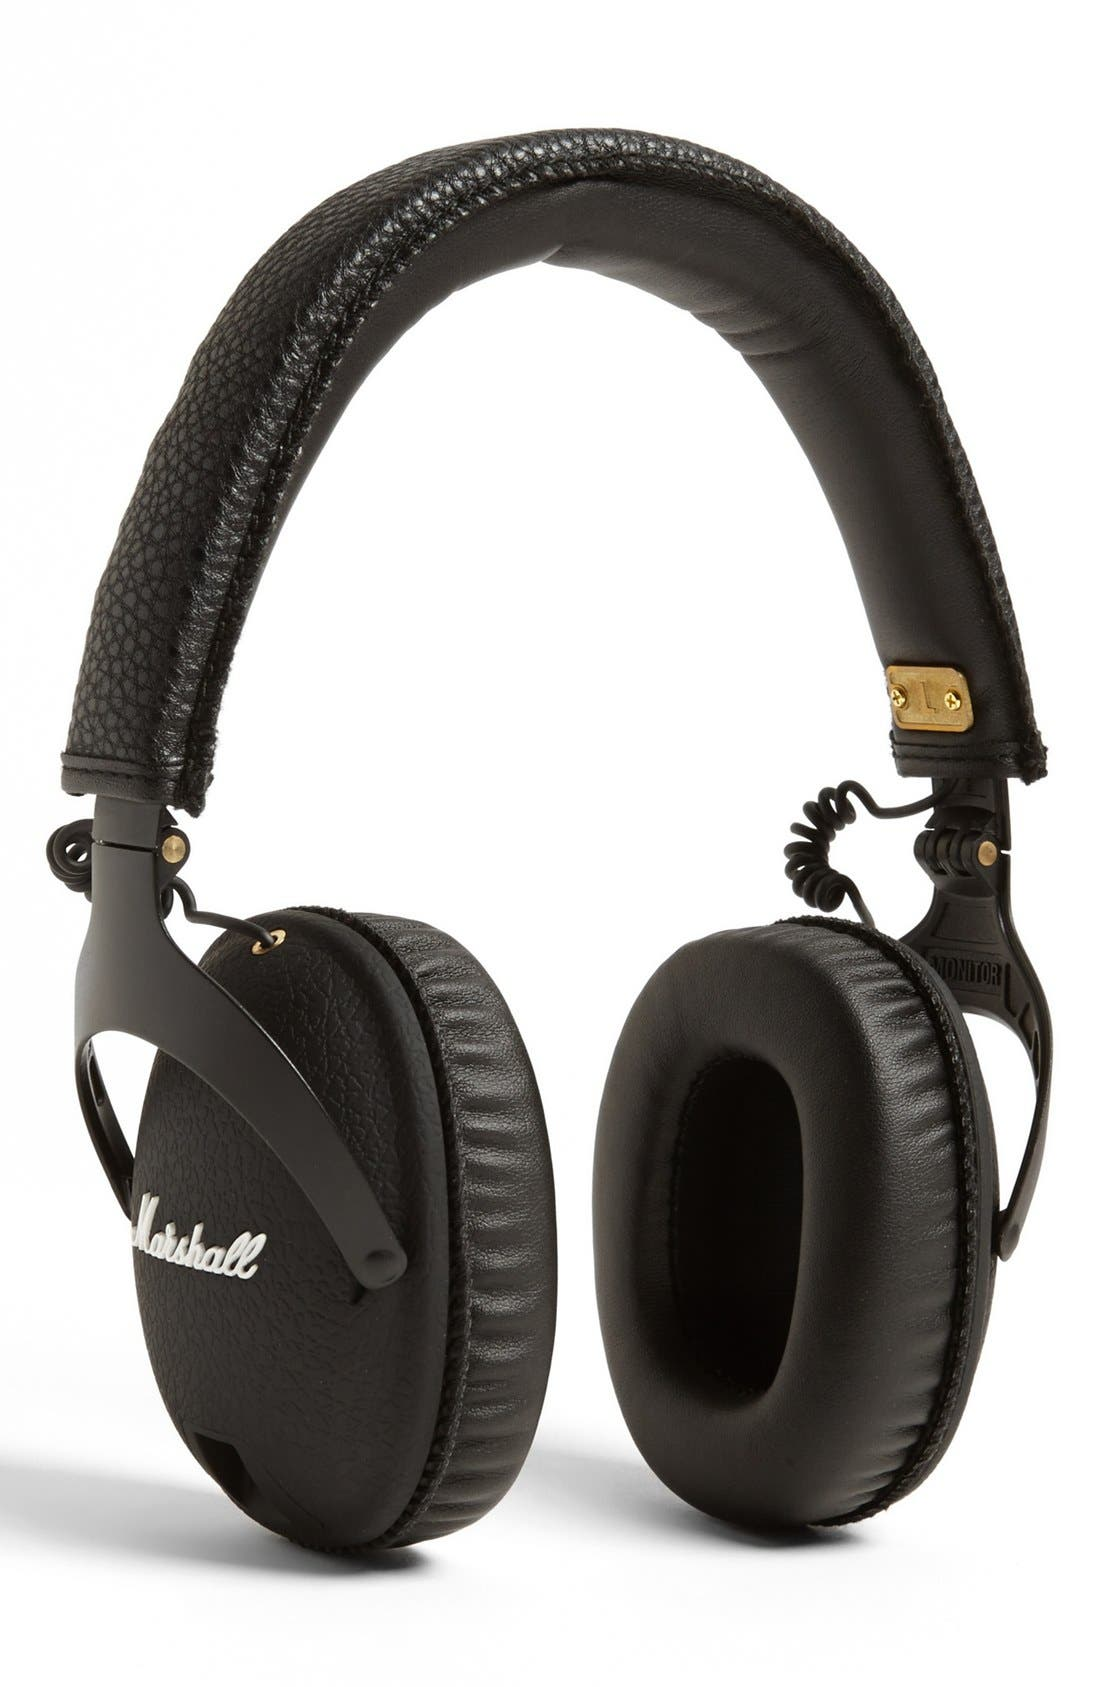 Alternate Image 1 Selected - Marshall 'Monitor' Over Ear Headphones